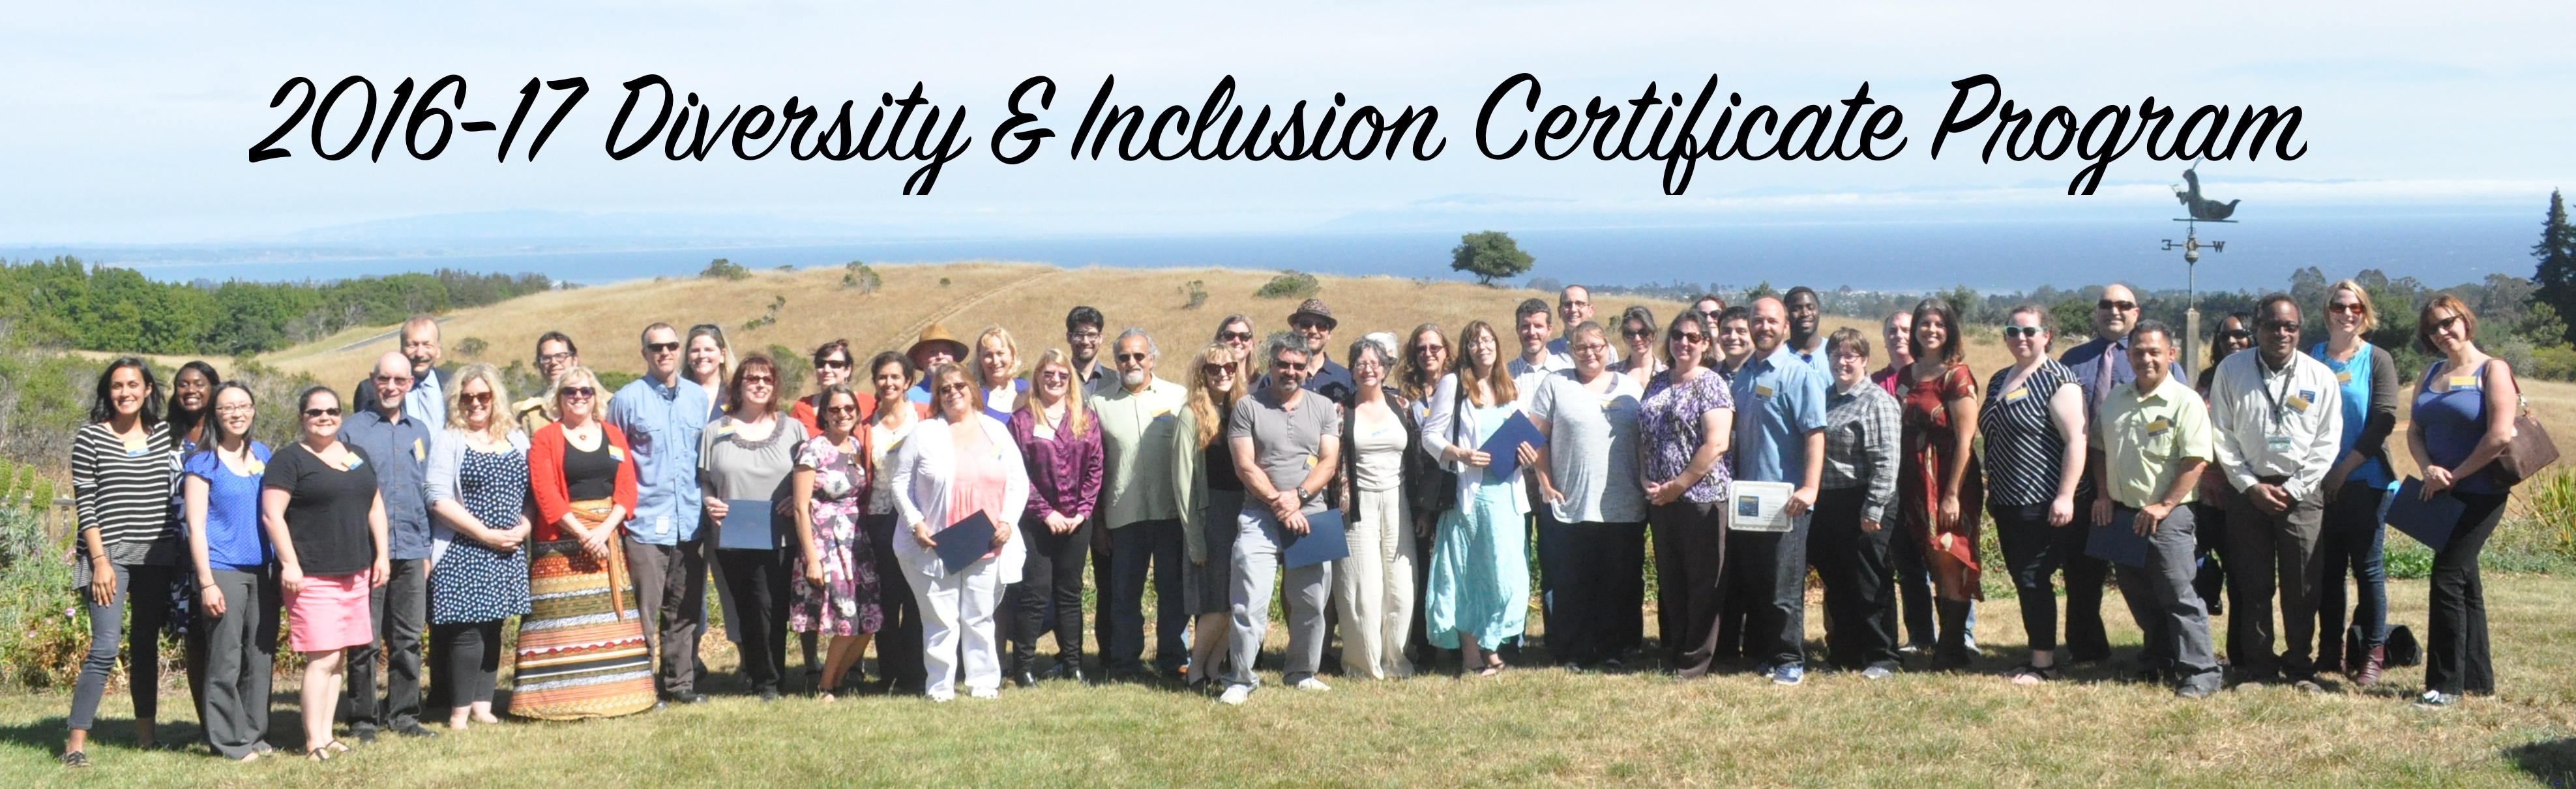 Certificate Program participants